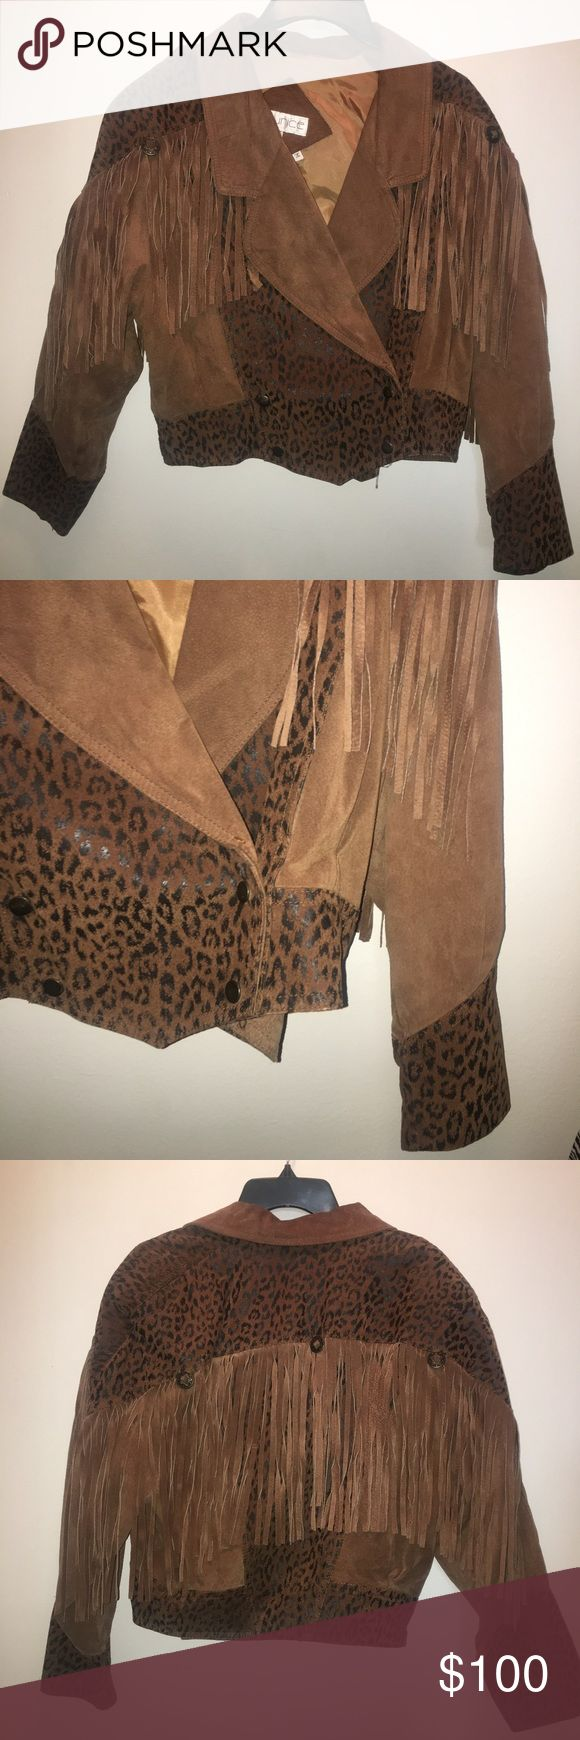 VINTAGE LEATHER LEOPARD PRINT FRINGE JACKET! Vintage leather leopard print fringe jacket, perfect condition, made in Korea! This is a must buy for all you vintage wearers! 100% Nylon Taffeta Jackets & Coats